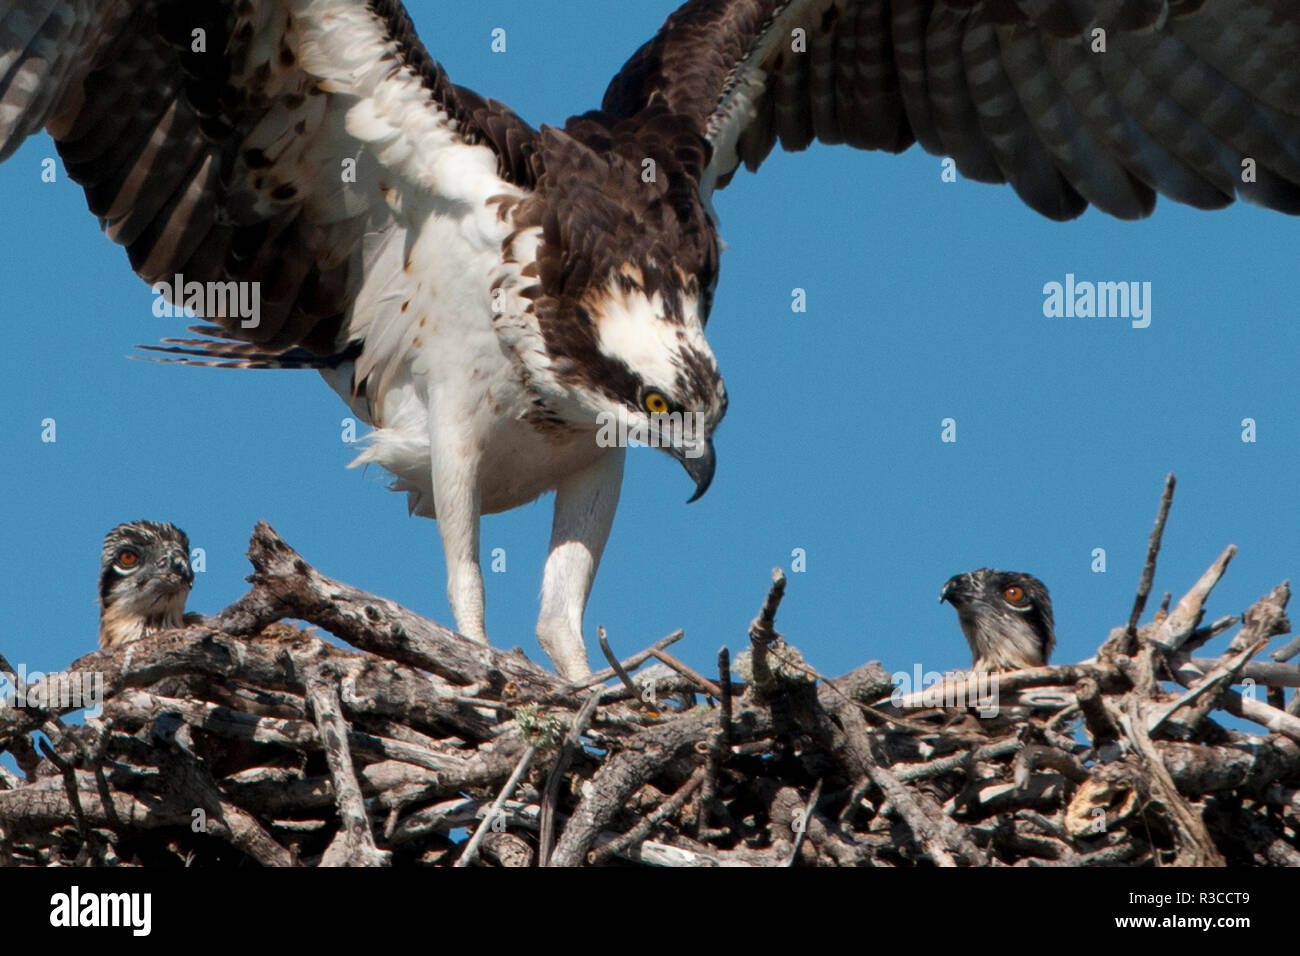 USA, Florida, Sanibel Island, Ding Darling NWR, Osprey Nest with adults and two babies - Stock Image